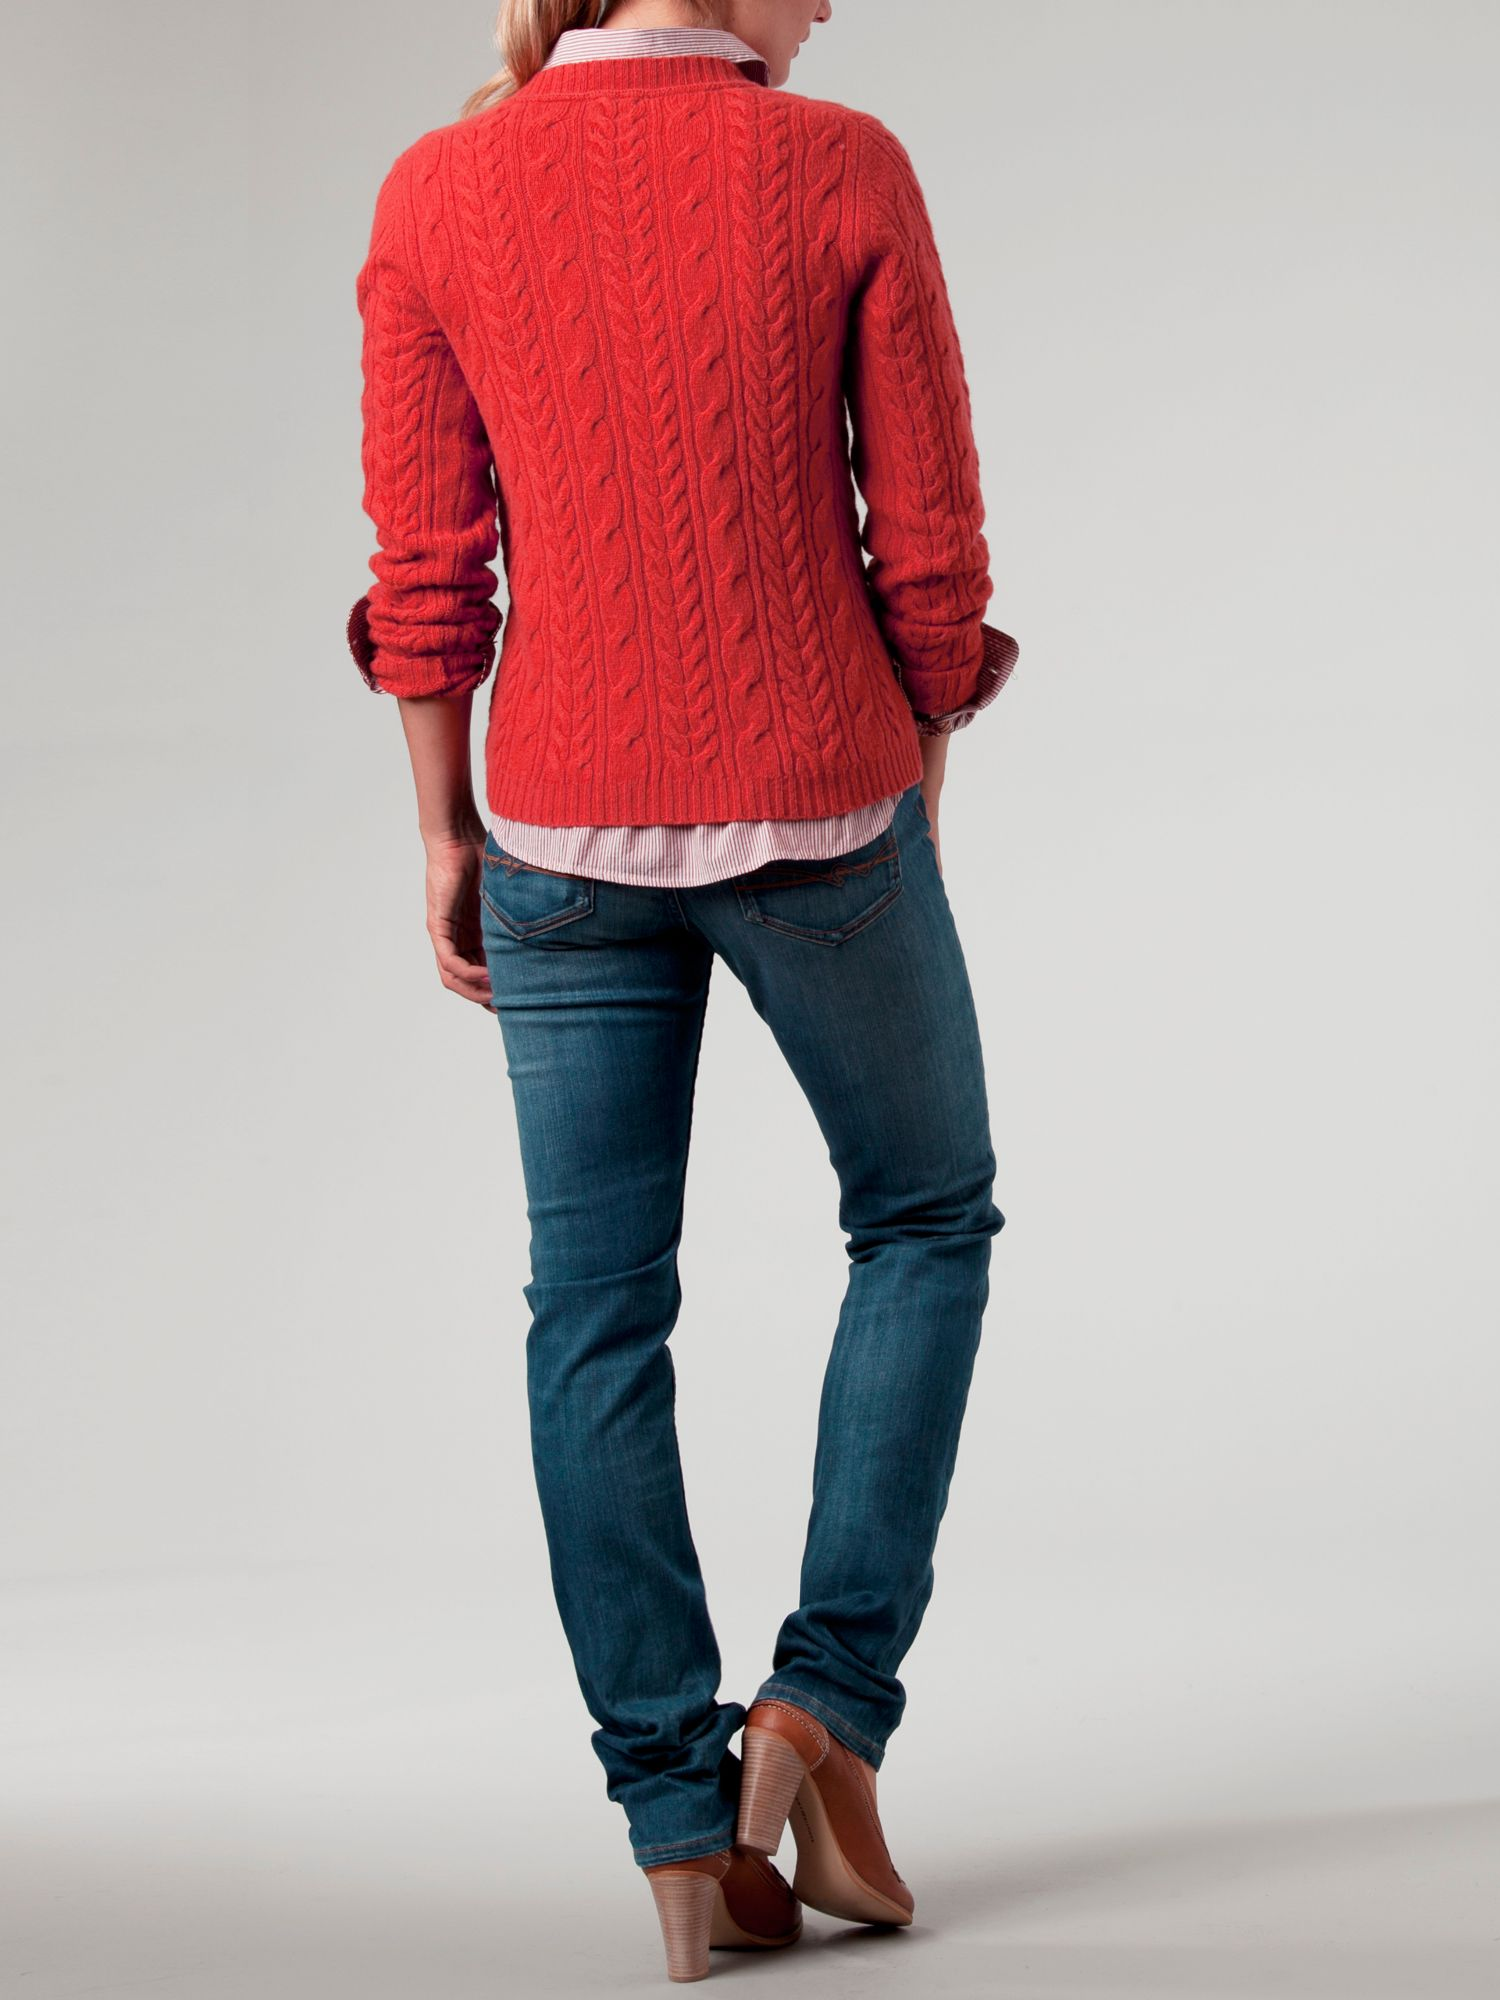 tommy hilfiger odette cable crew neck sweater in red lyst. Black Bedroom Furniture Sets. Home Design Ideas